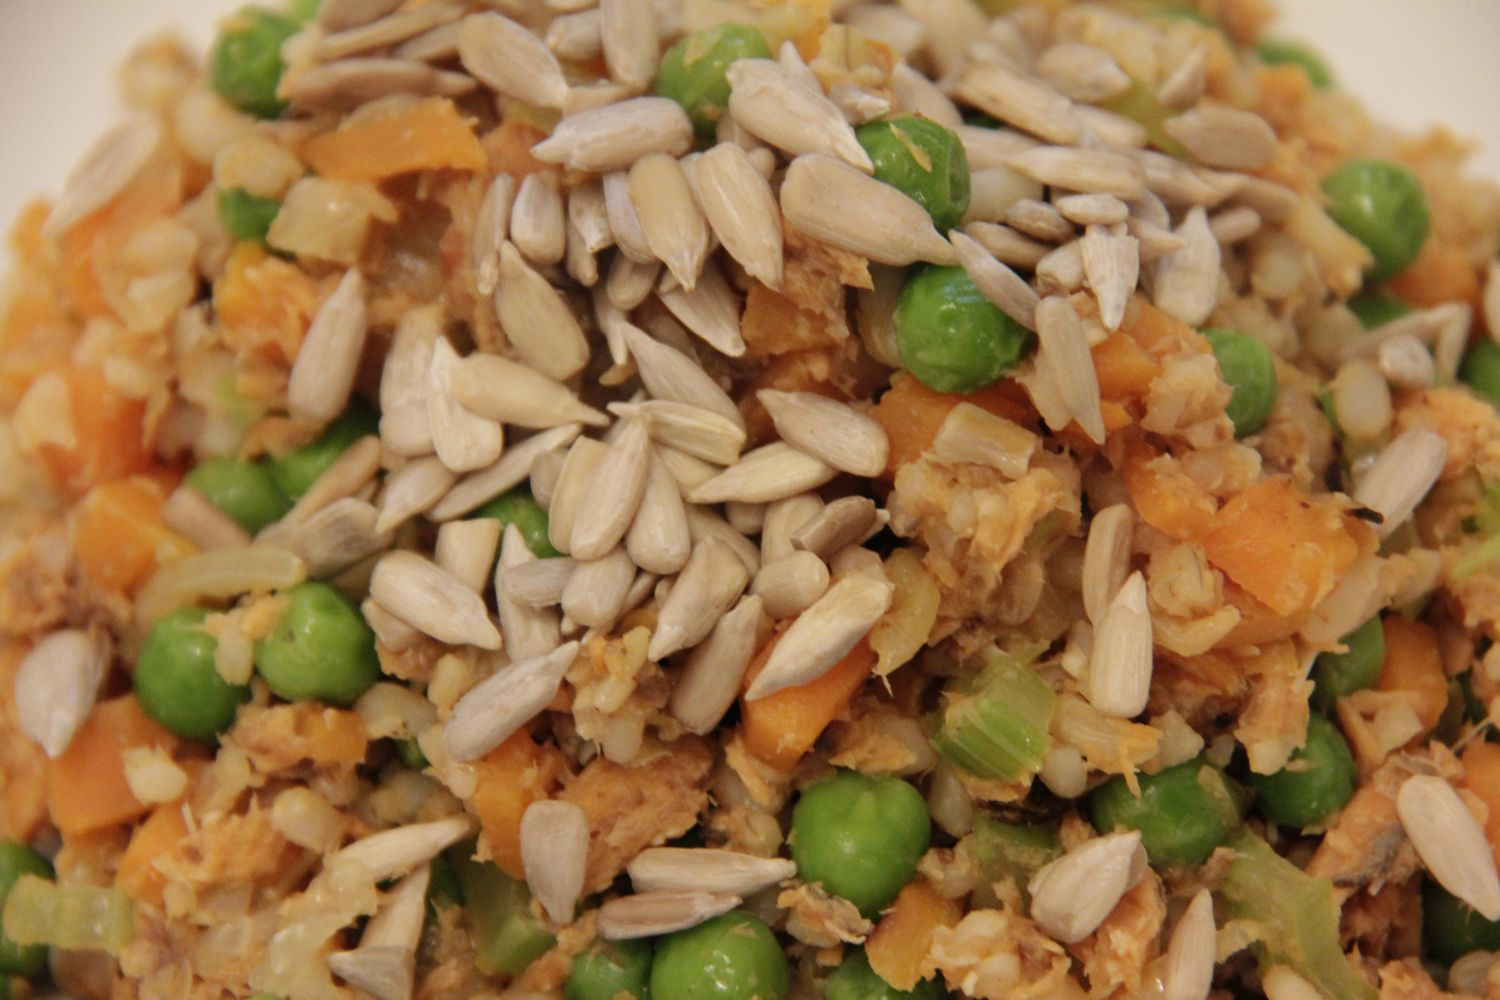 4 different types of vegetables, salmon and sunflower seeds - a v. healthy Saturday meal. Quick, easy and one pan..jpg